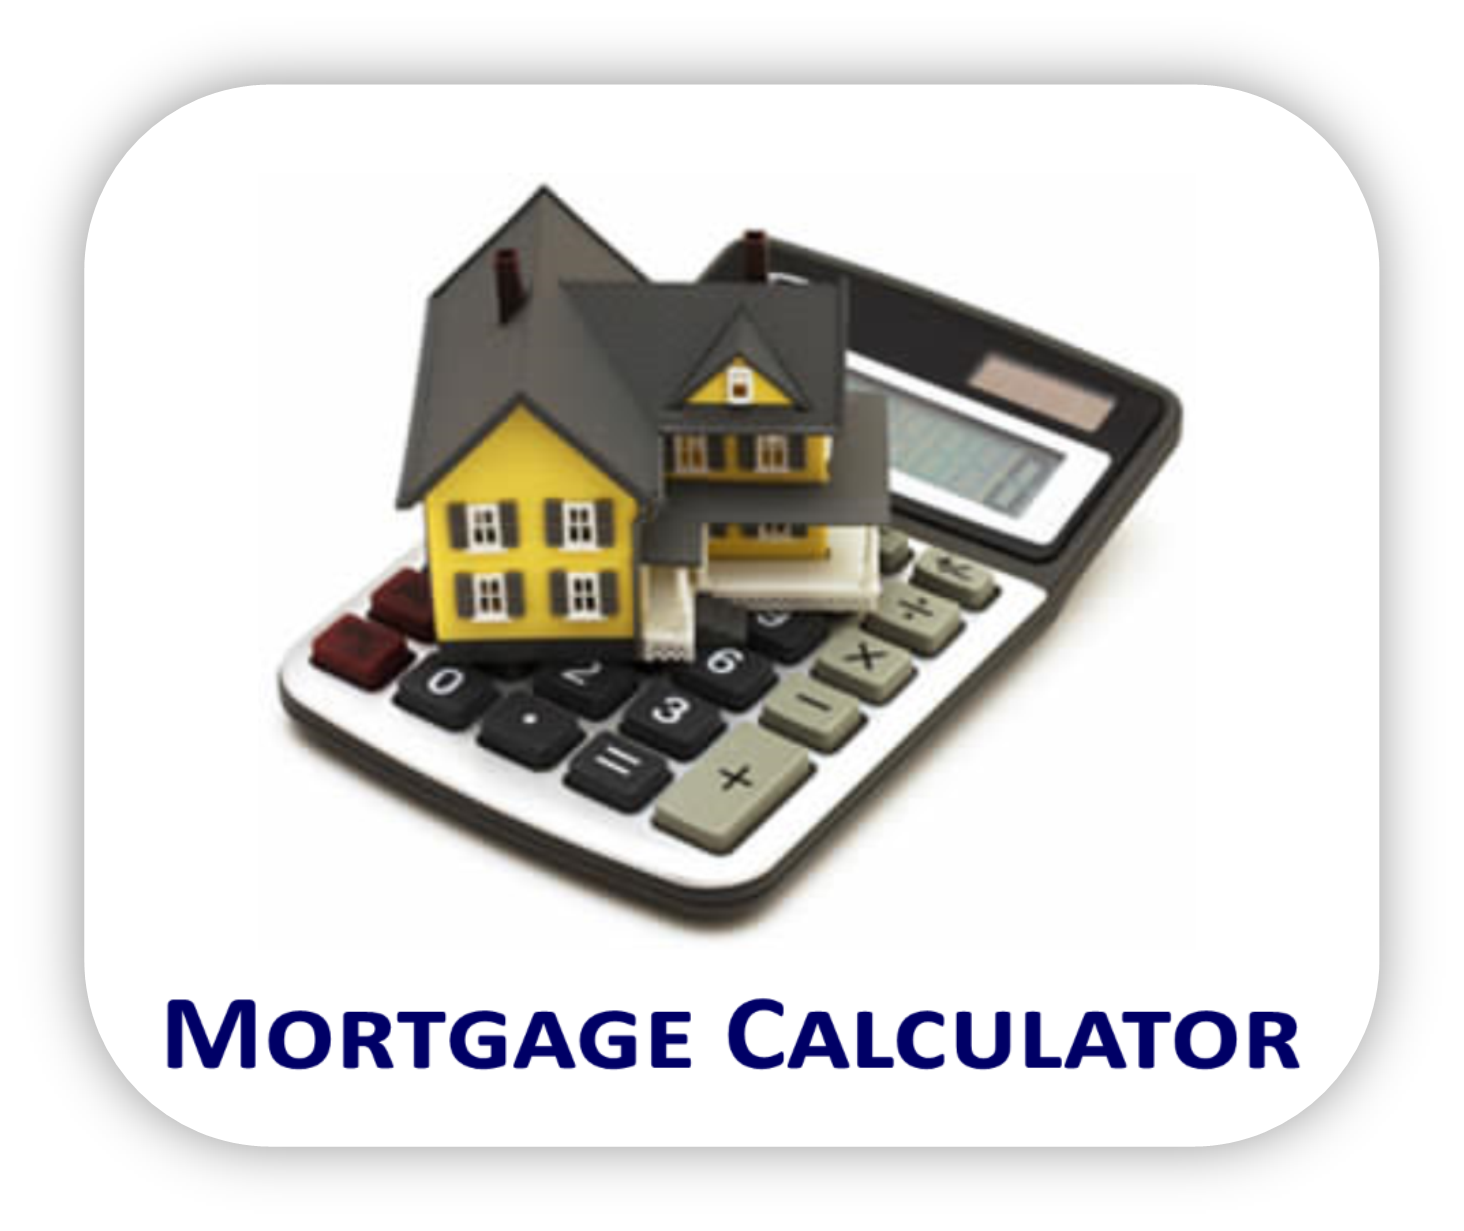 Mortgage Calculator2.png